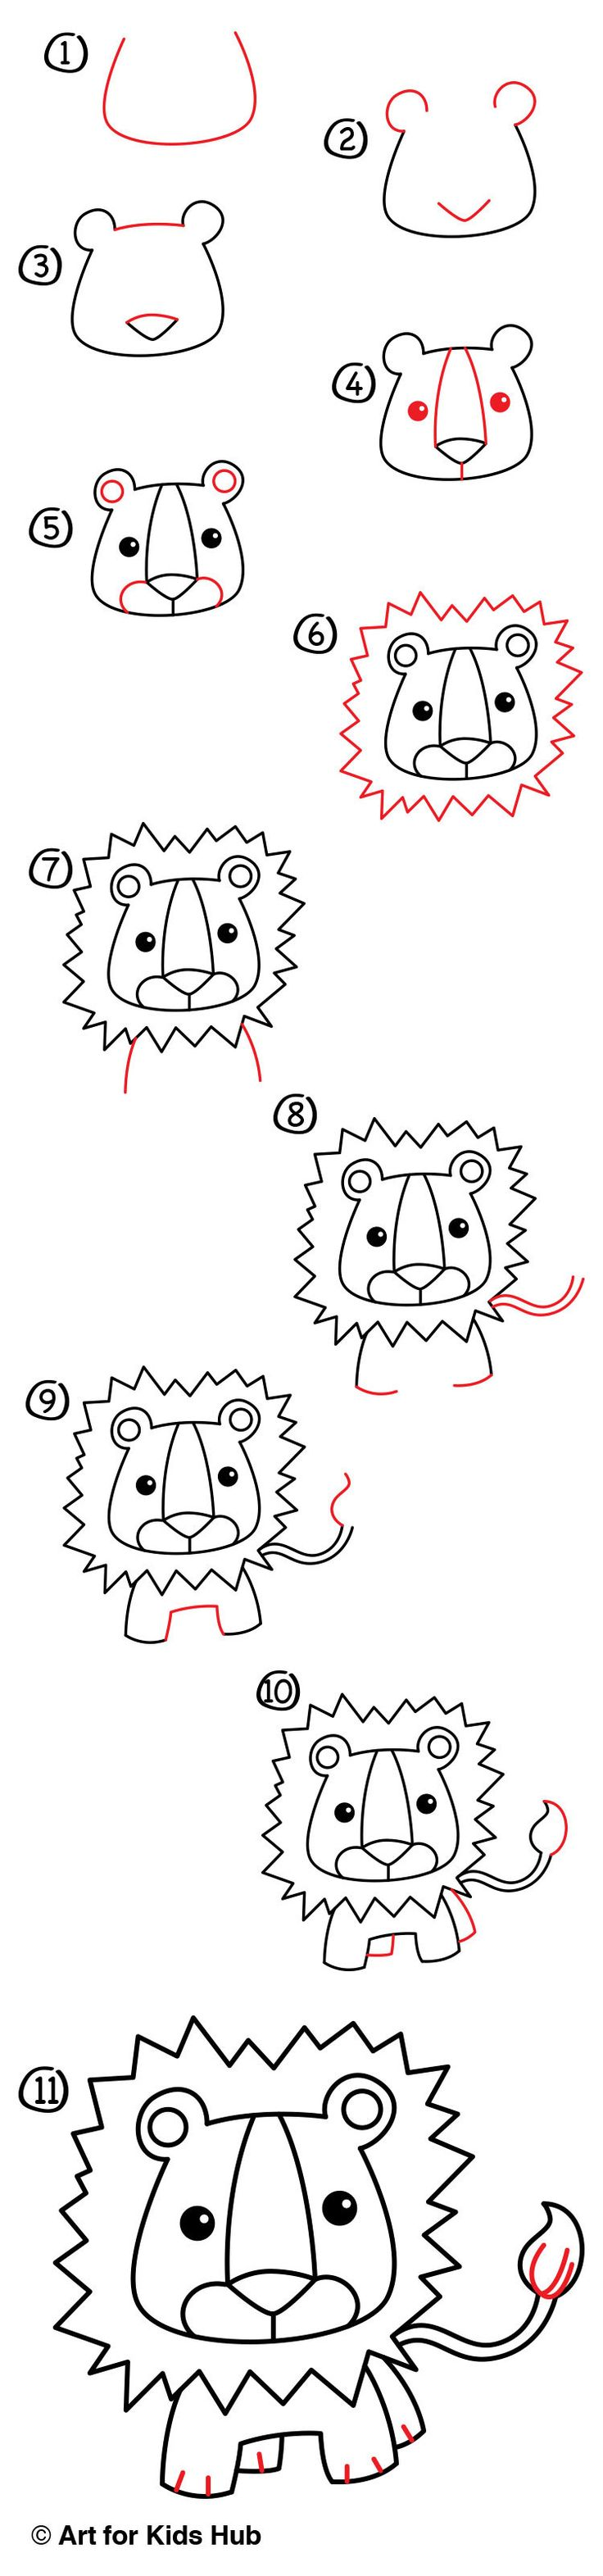 Follow along with us and learn how to draw a cartoon lion! This lesson is perfect for young and old artists alike.